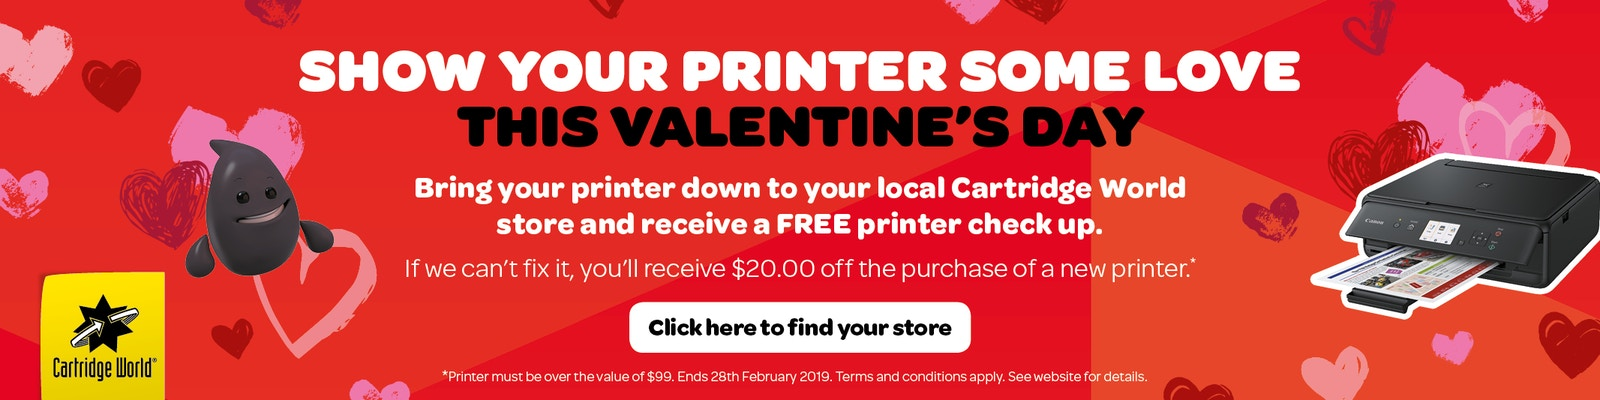 Show your printer some love